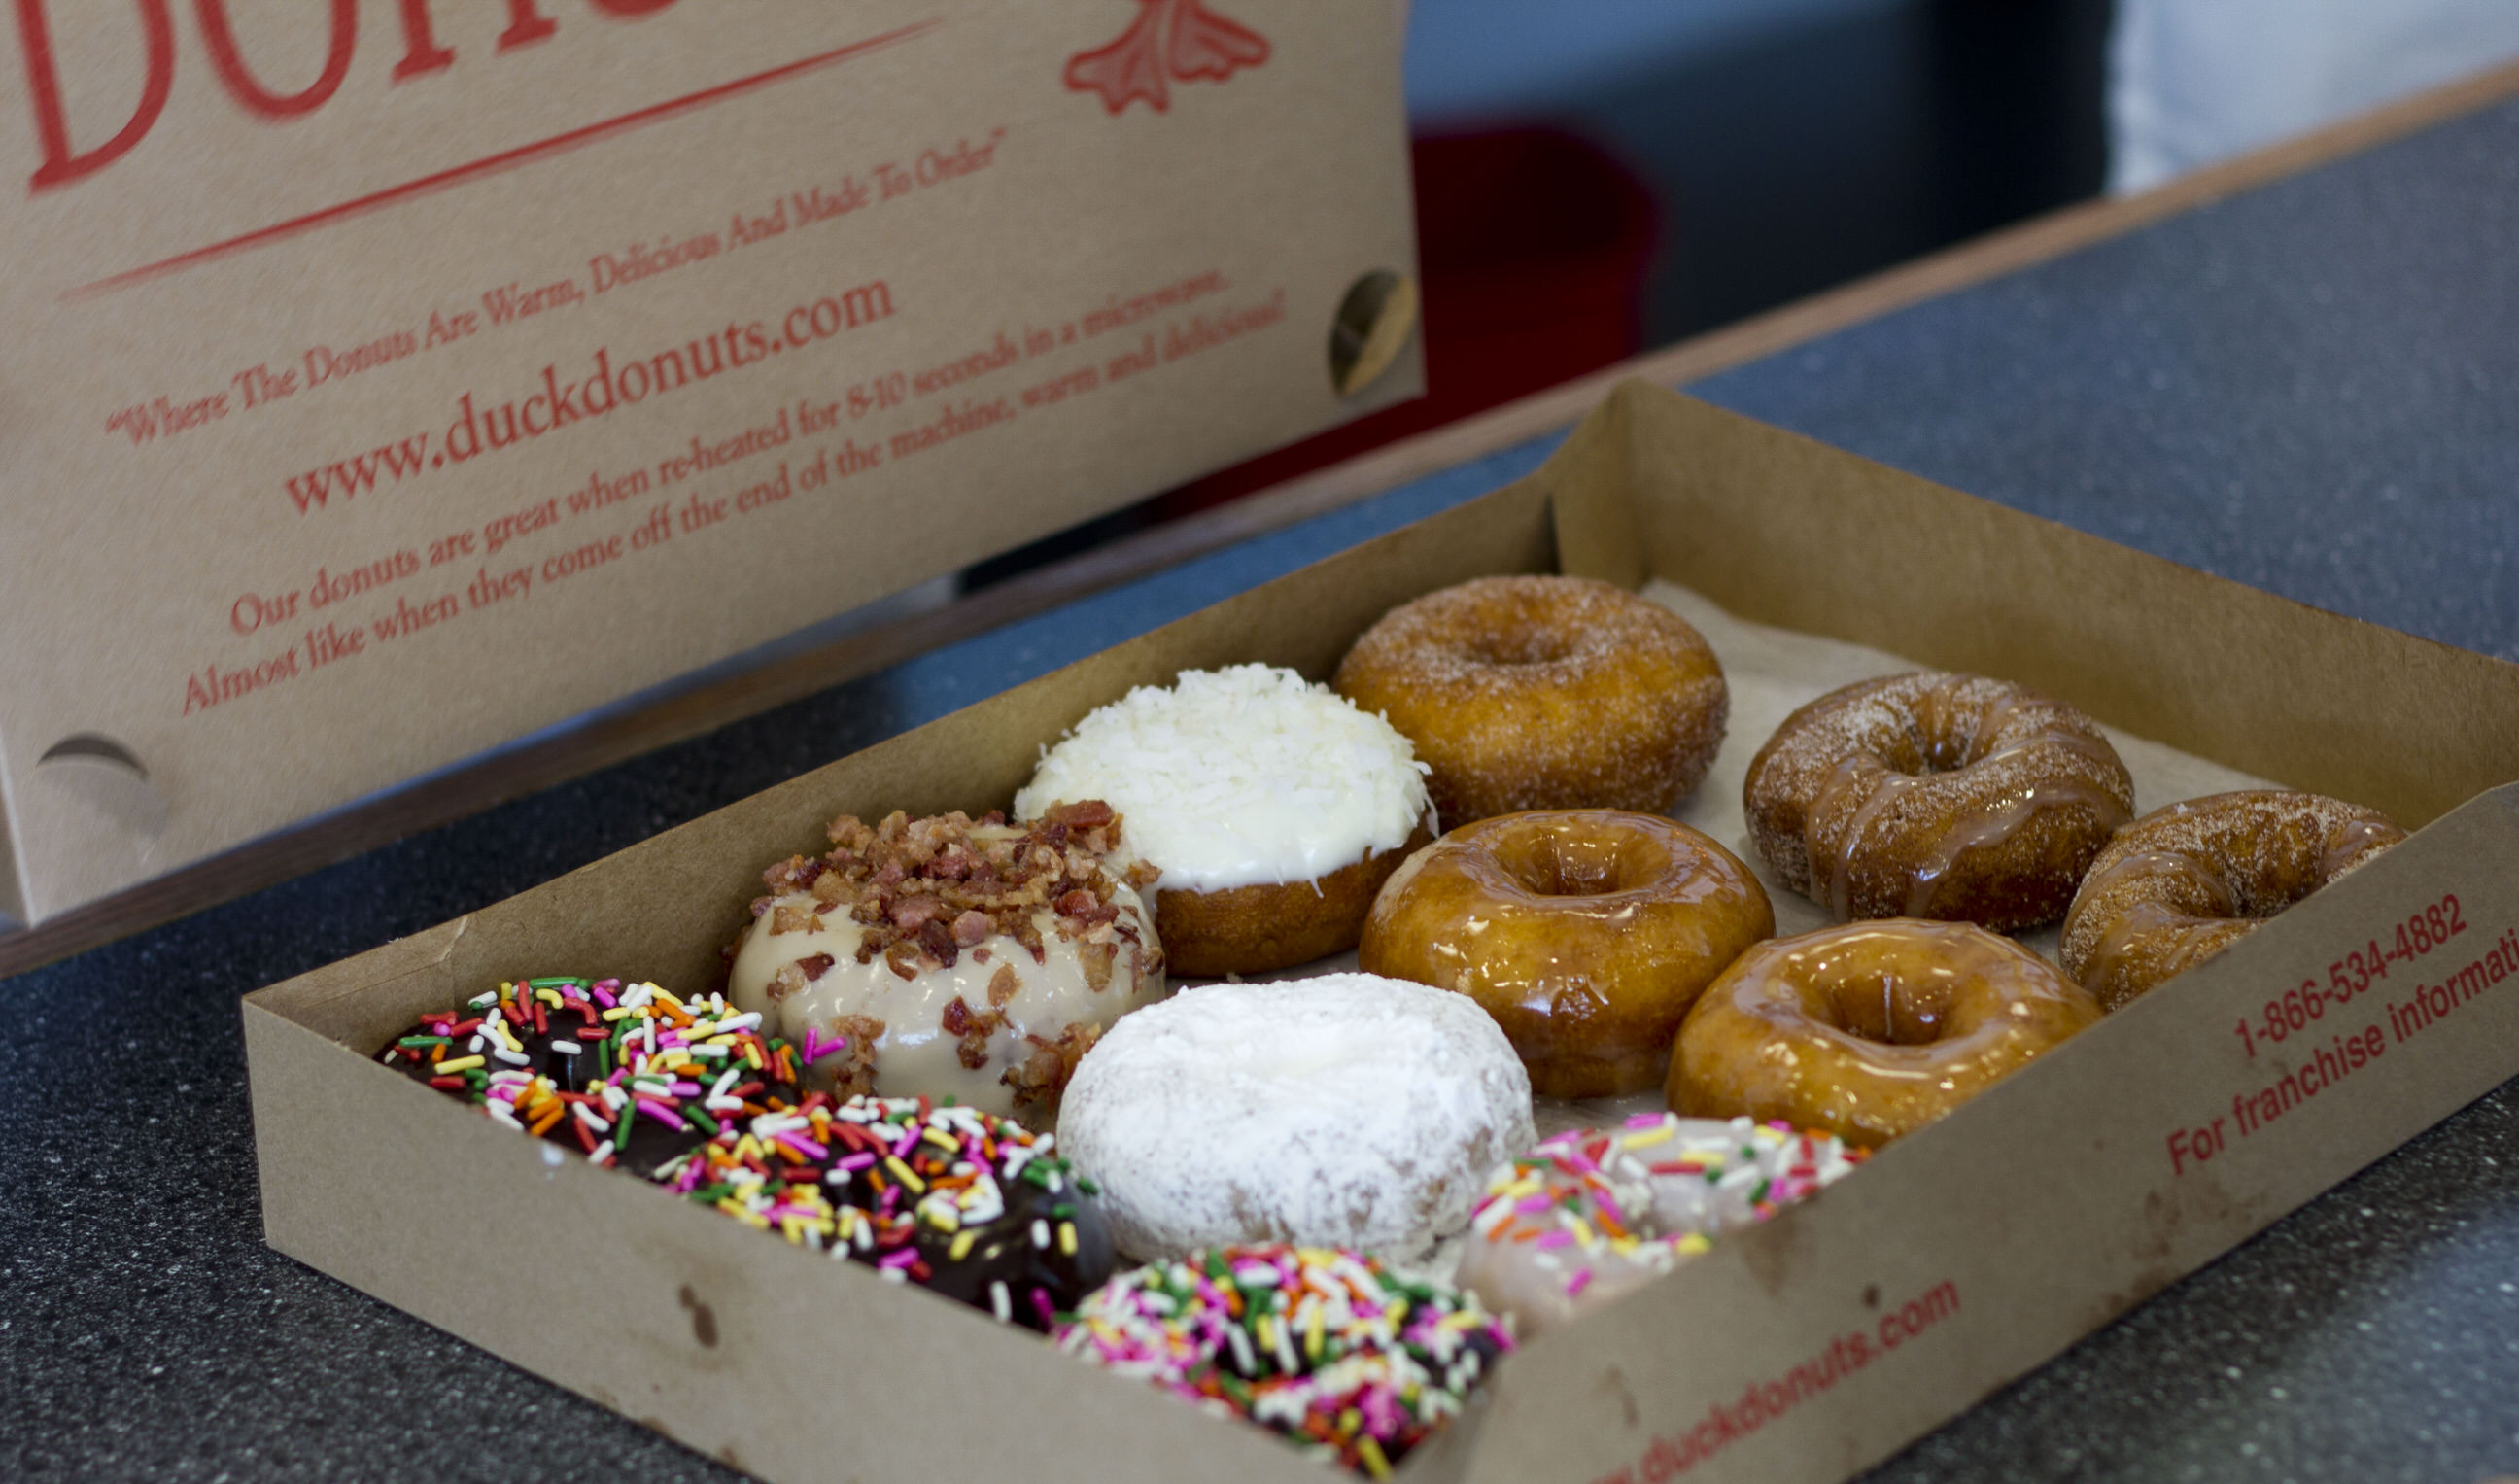 Doughnut destination takes a quack at competition